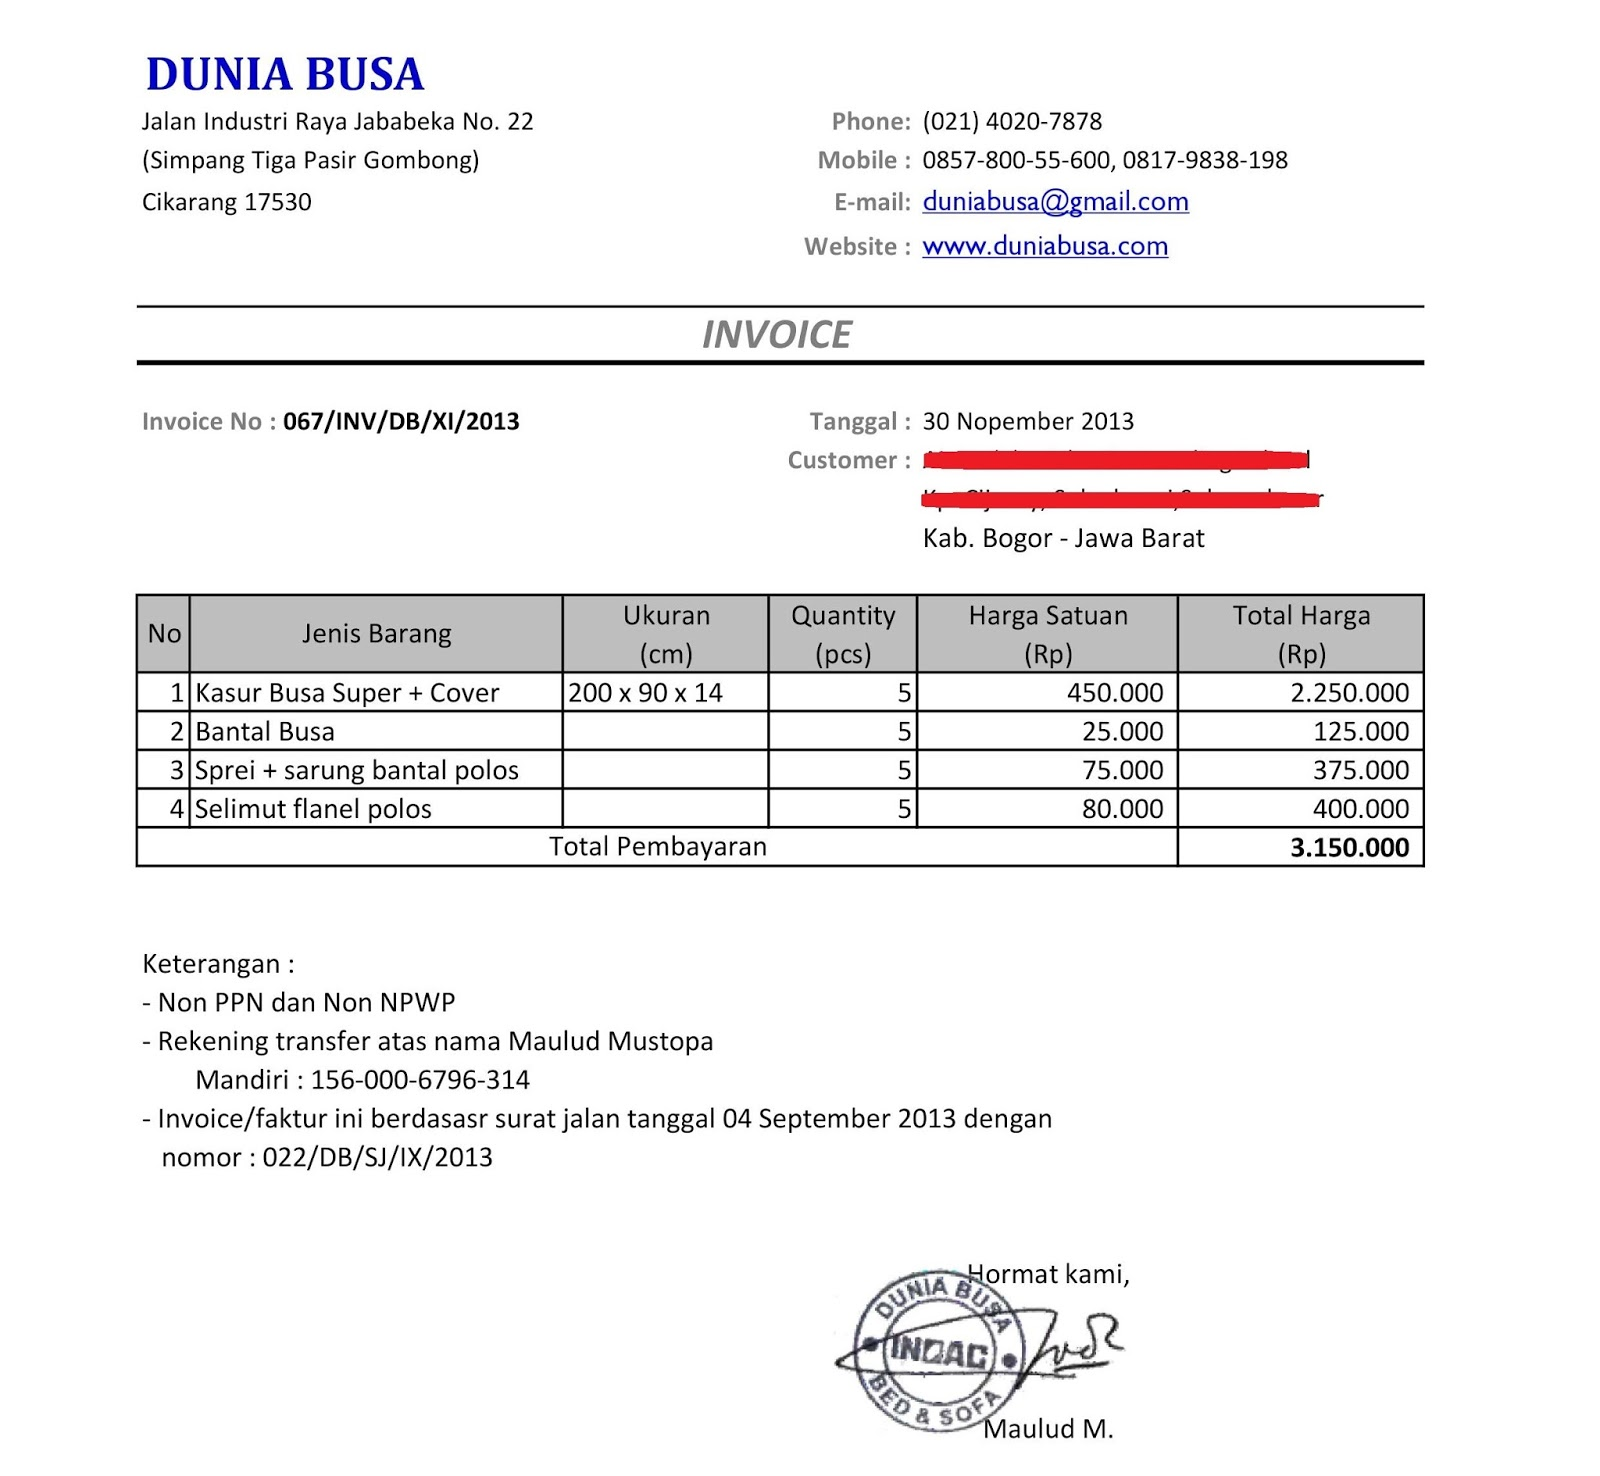 Centralasianshepherdus  Unique Free Invoice Online  Create Invoice Online  Invoice Template  With Glamorous Contoh Format Invoice Atau Surat Tagihan  Brankas Arsip  Free Invoice Online With Alluring Nissan Invoice Price Also Nch Software Express Invoice In Addition Paperless Invoice And Car Dealer Invoice Prices Free As Well As Tacoma Invoice Price Additionally Invoice Template Ms Word From Sklepco With Centralasianshepherdus  Glamorous Free Invoice Online  Create Invoice Online  Invoice Template  With Alluring Contoh Format Invoice Atau Surat Tagihan  Brankas Arsip  Free Invoice Online And Unique Nissan Invoice Price Also Nch Software Express Invoice In Addition Paperless Invoice From Sklepco